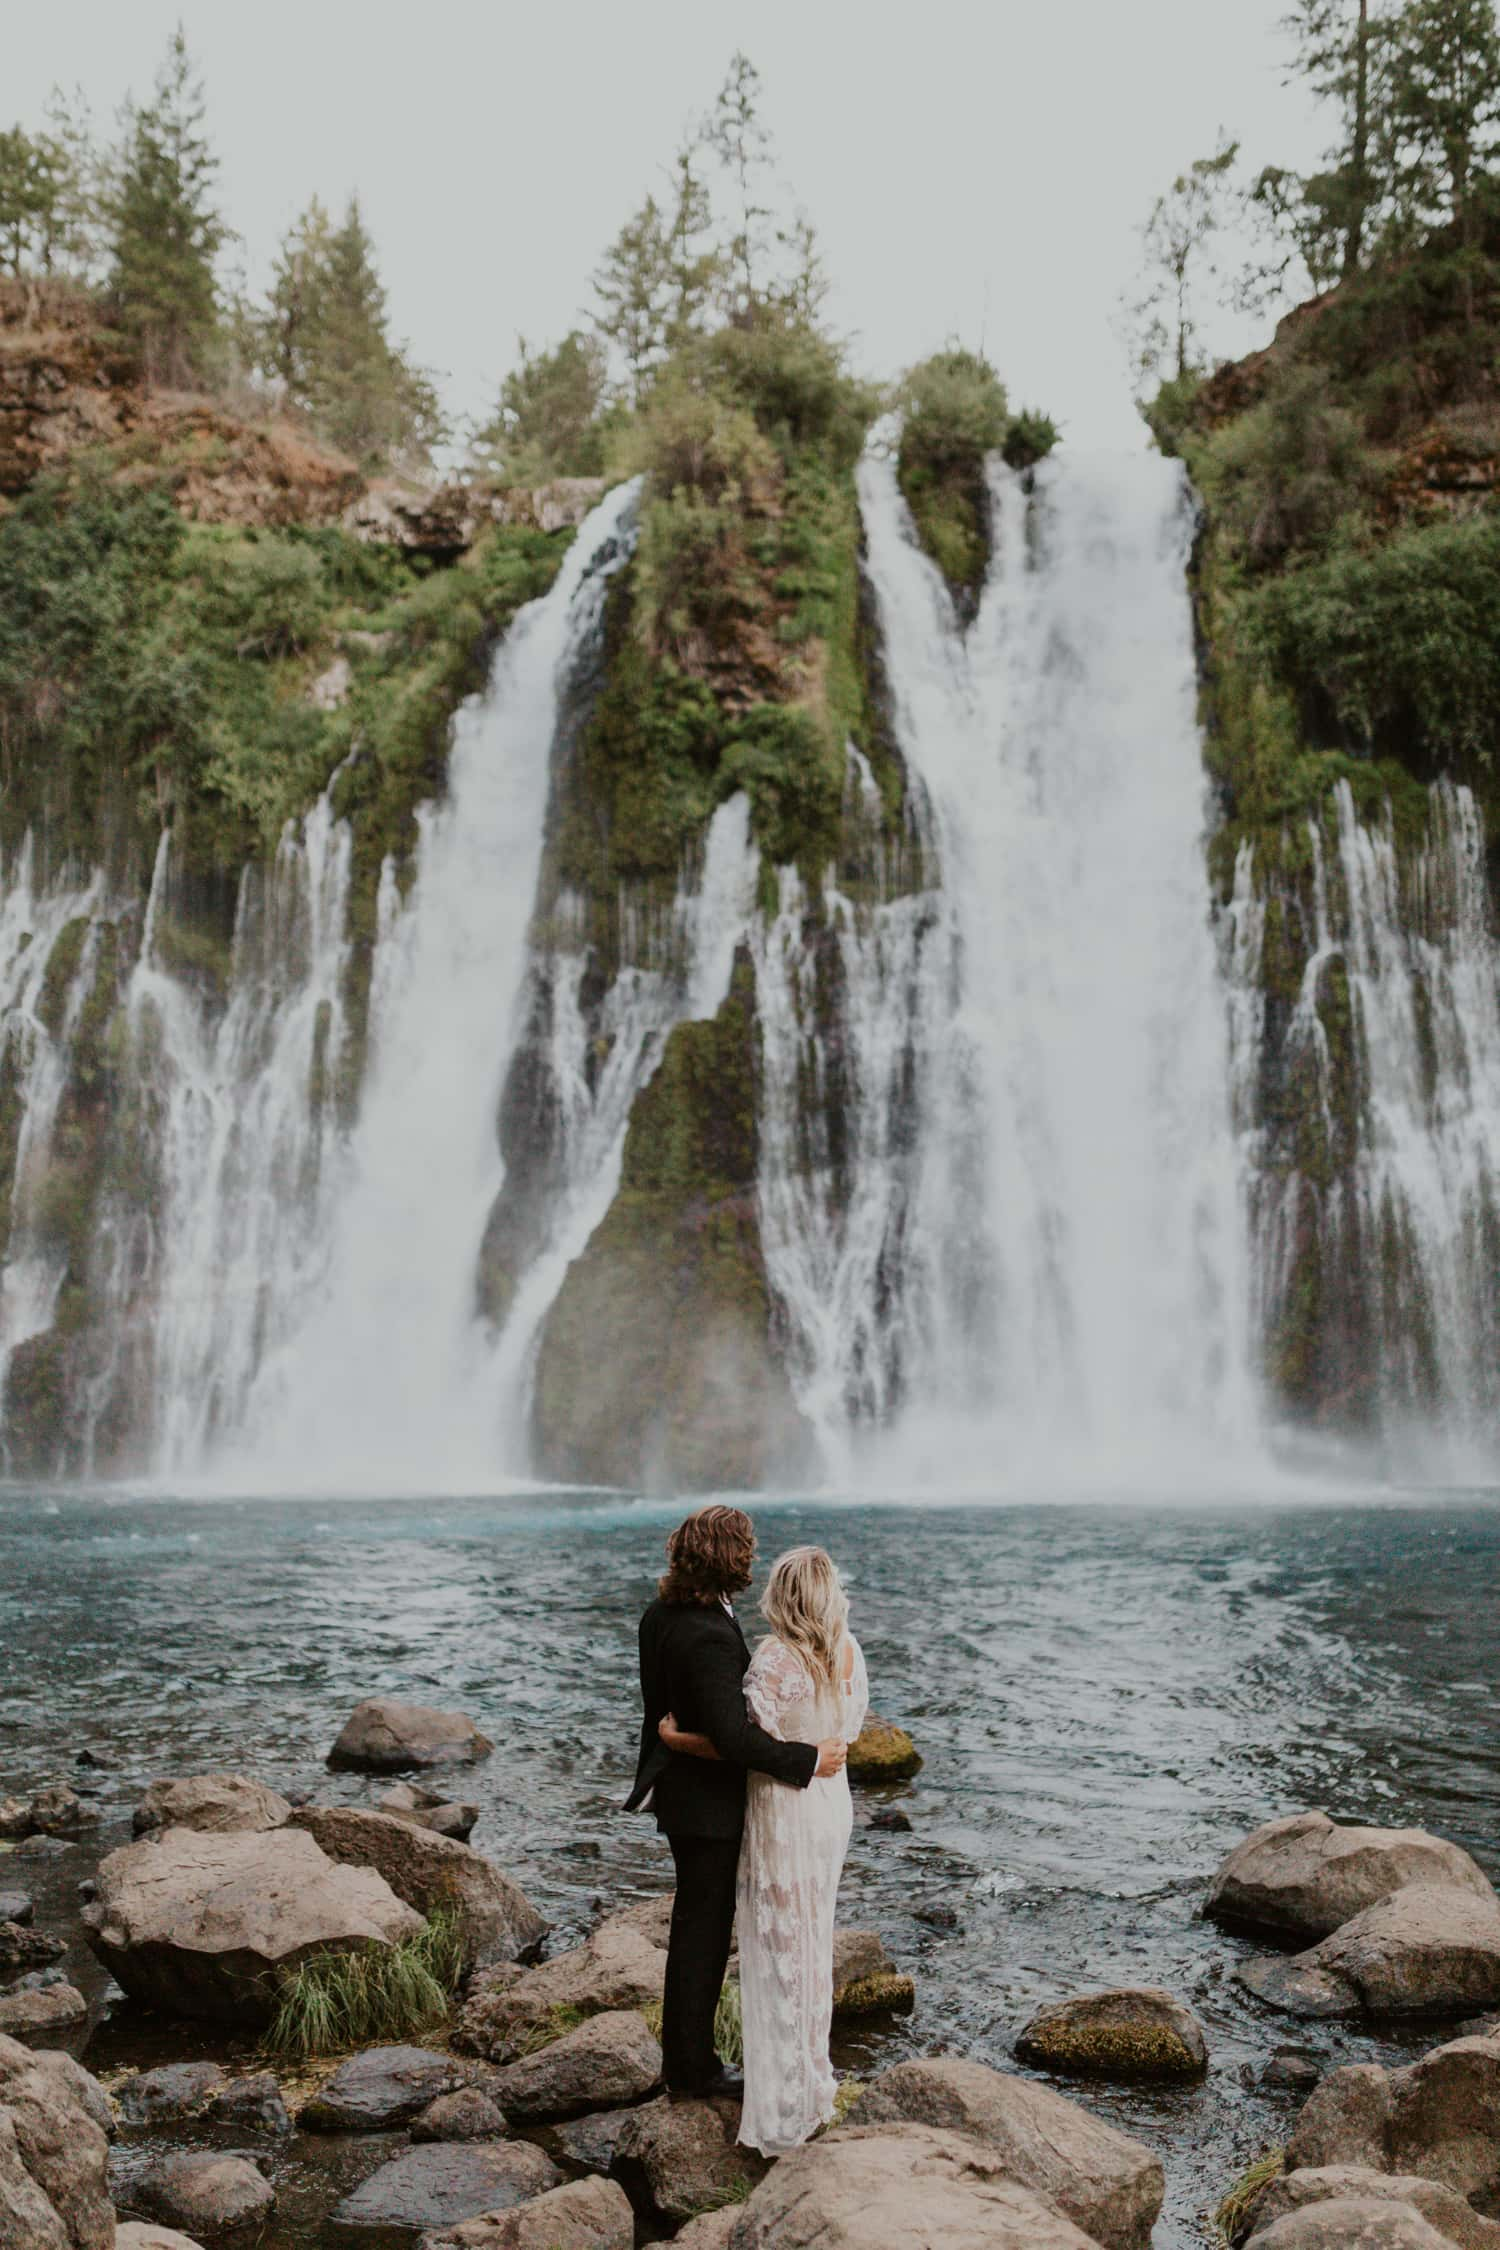 A couple having a waterfall wedding at Burney Falls, a waterfall in Northern California.